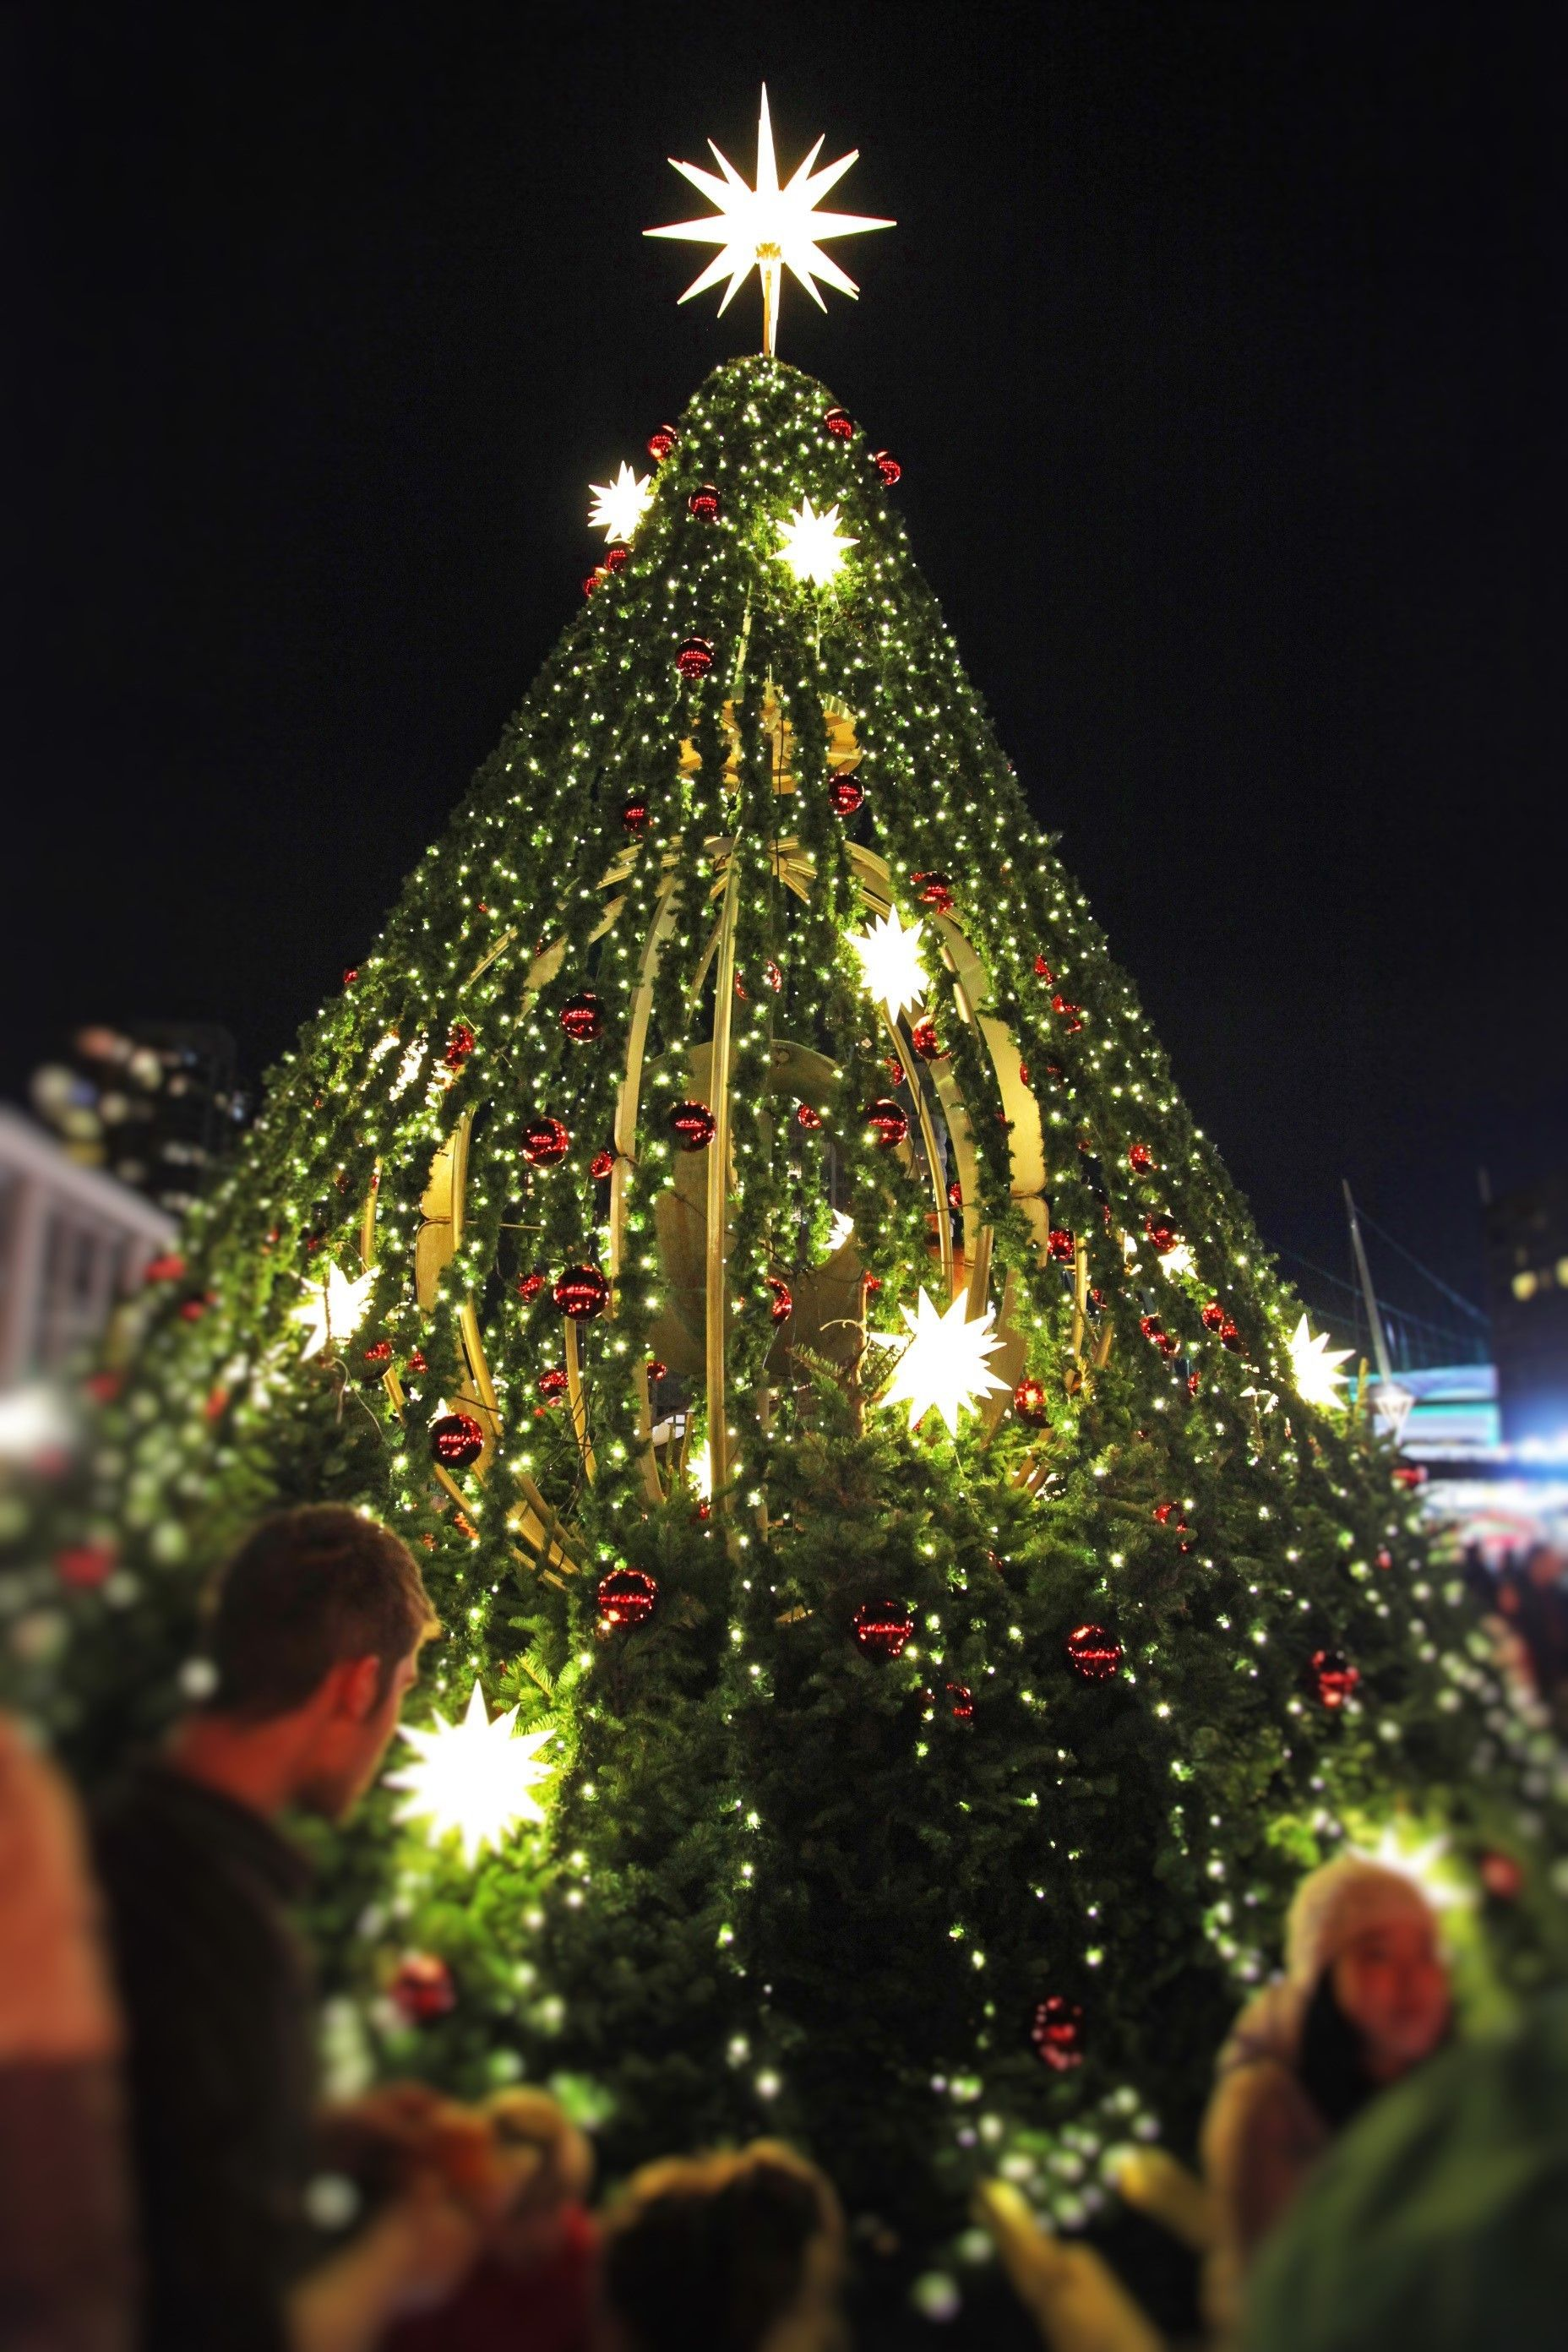 The Great Christmas Tree At The Vancouver Christmas Market, Brightened By  The Lovely Herrnhut Stars